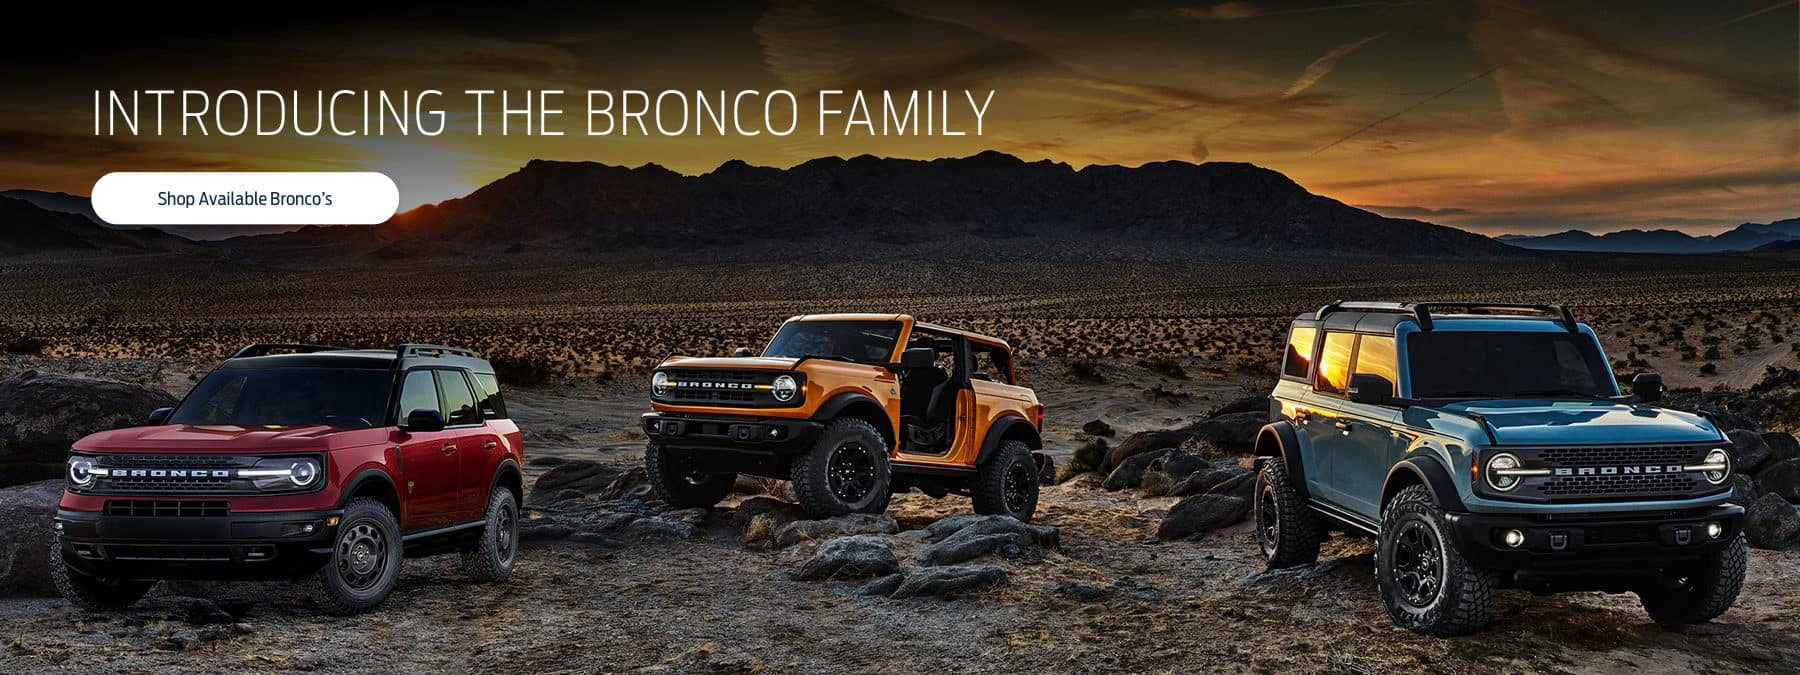 Introducing the Bronco Family